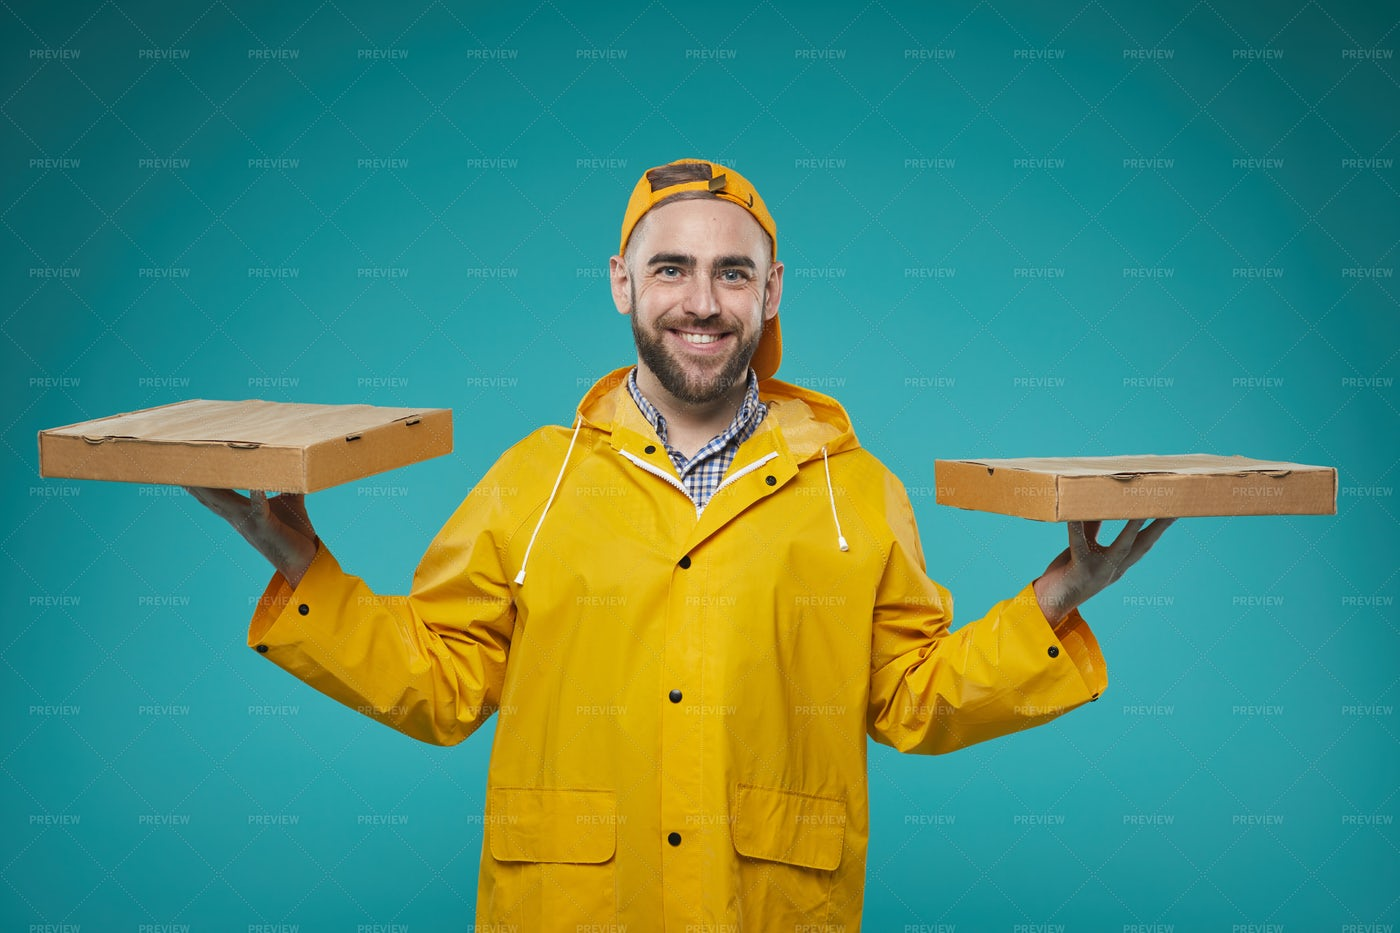 Food Delivery Man With Pizza Boxes: Stock Photos